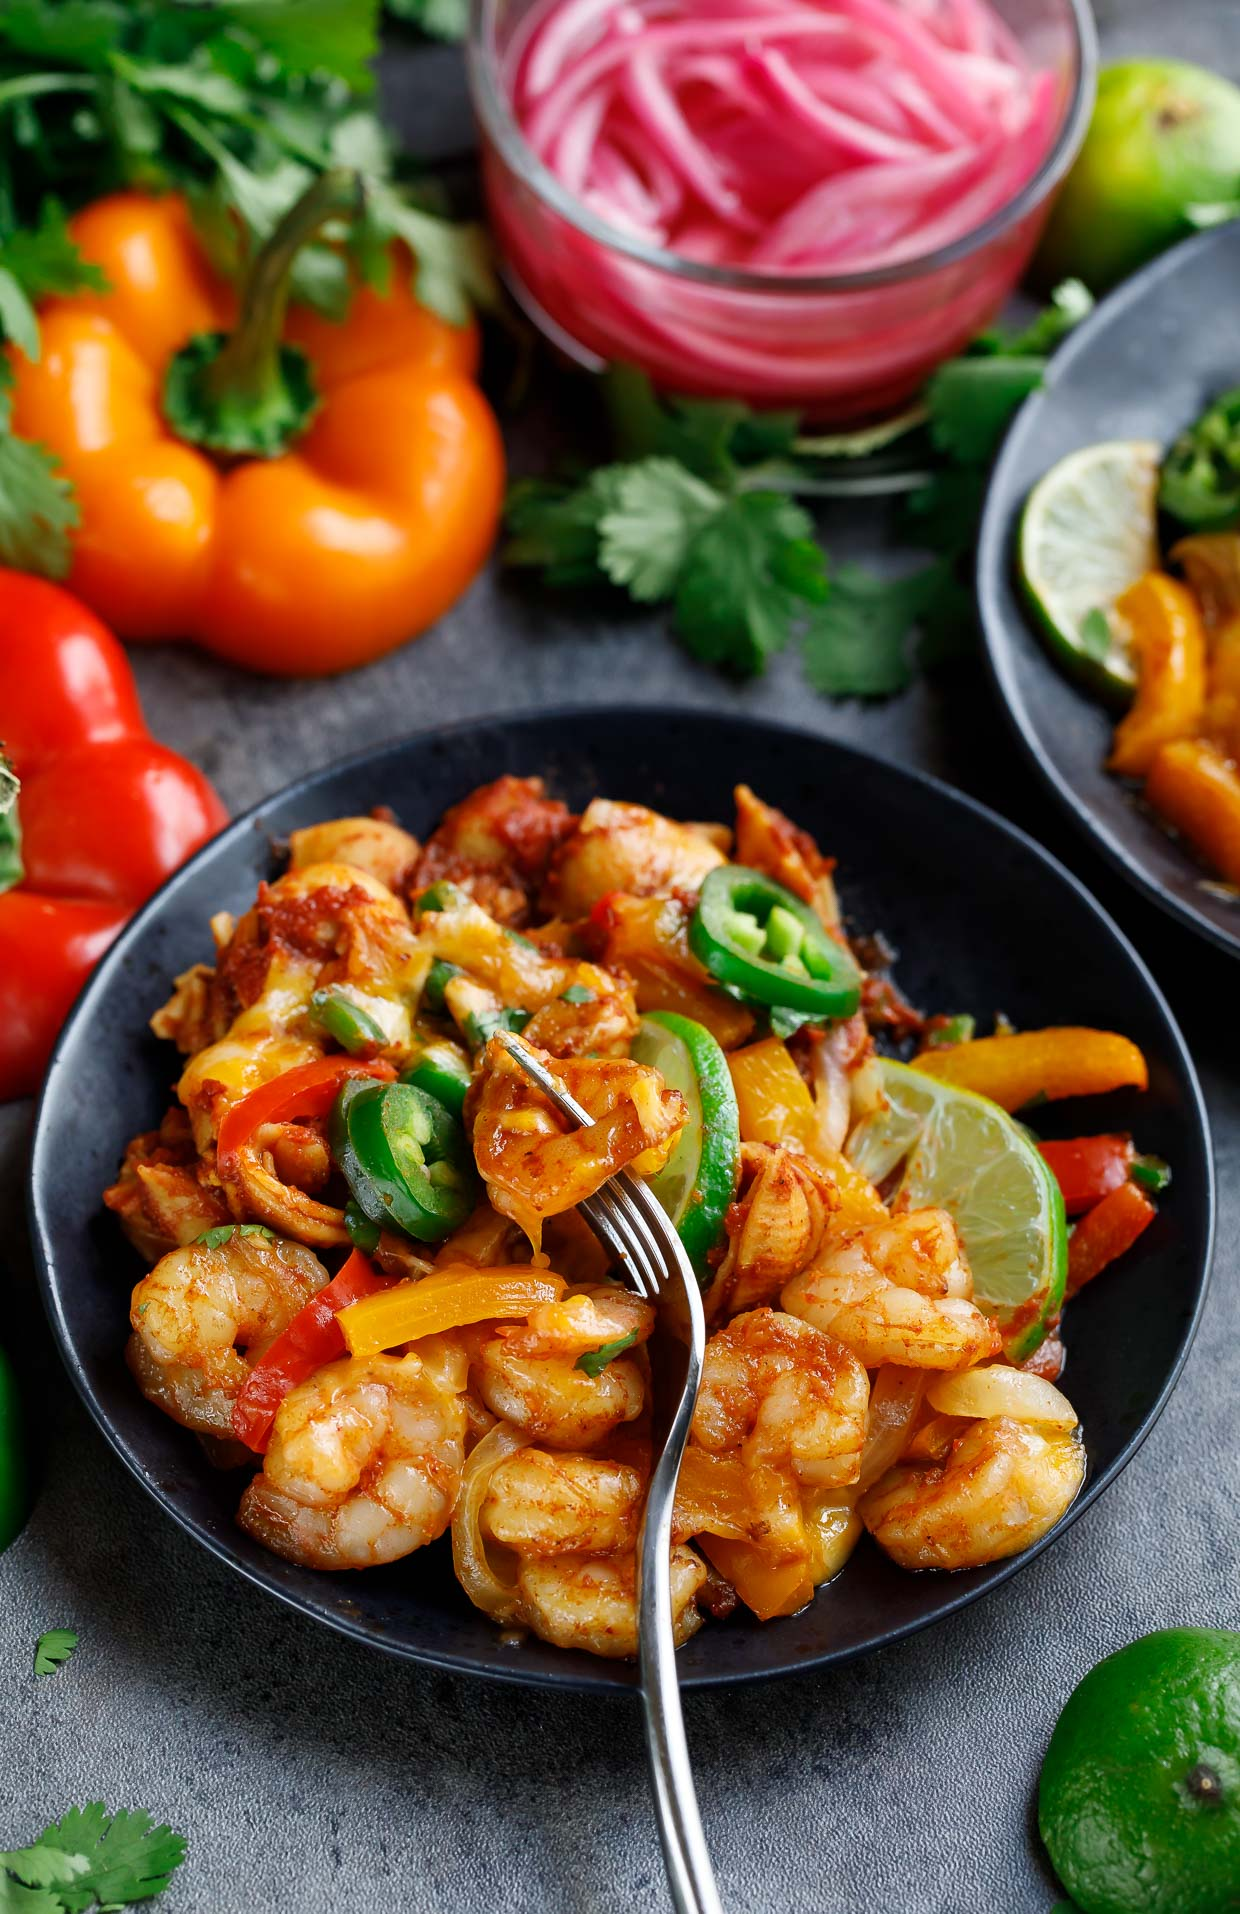 Tasty One-Pot Shrimp Fajita Pasta